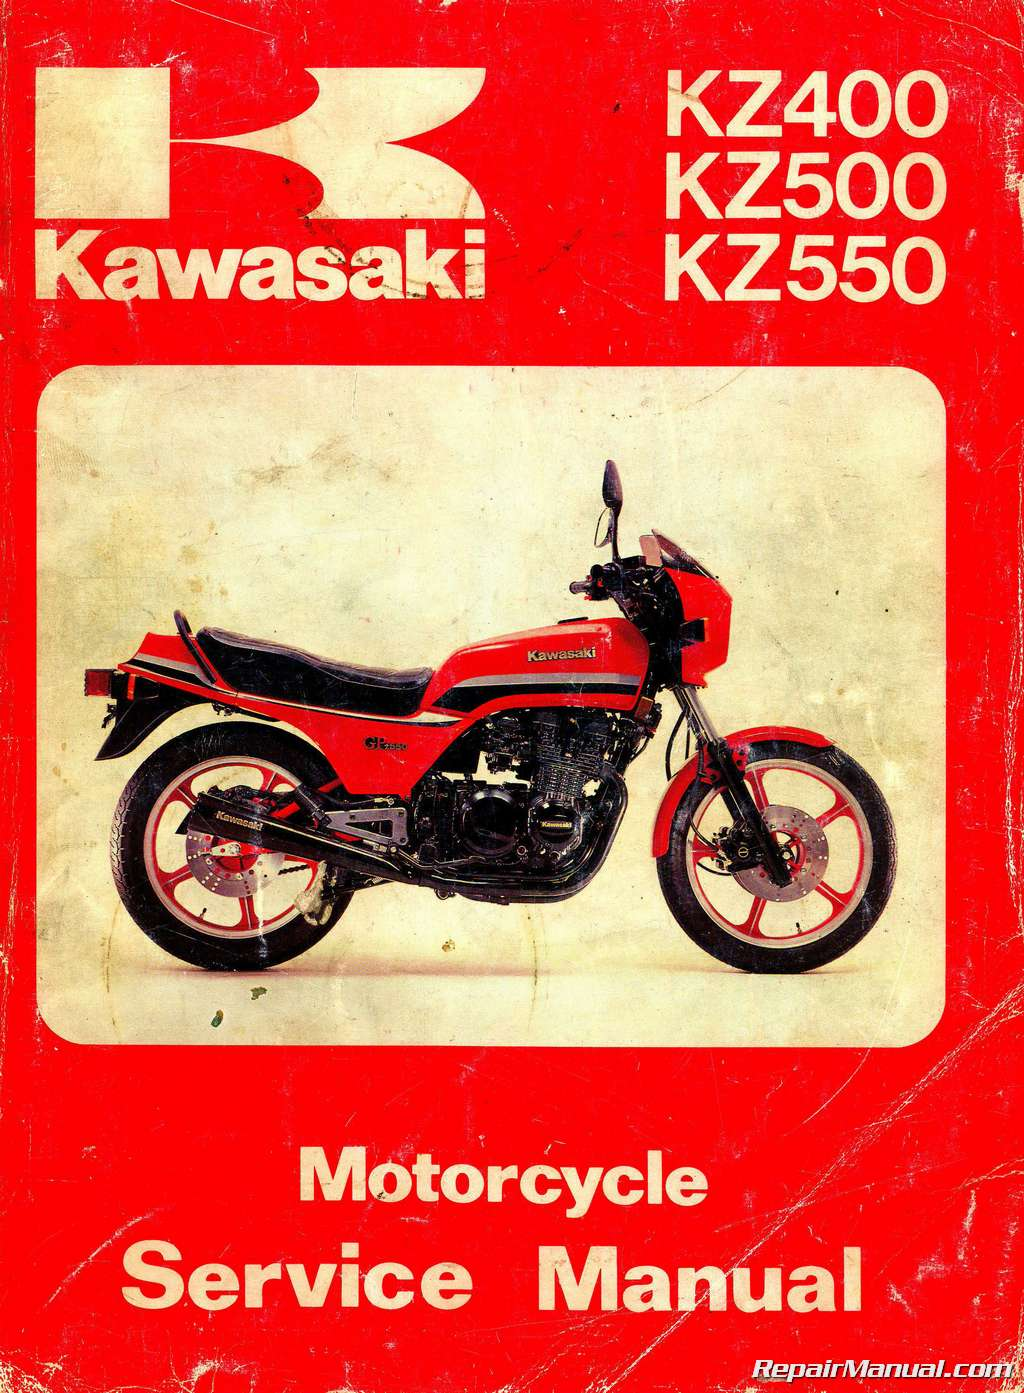 Wiring Diagram Motorcycle 84 Kawasaki 550 Diagrams 360 Kz400 Kz500 Kz550 Service Manual Rh Repairmanual Com 2008 Ninja 2006